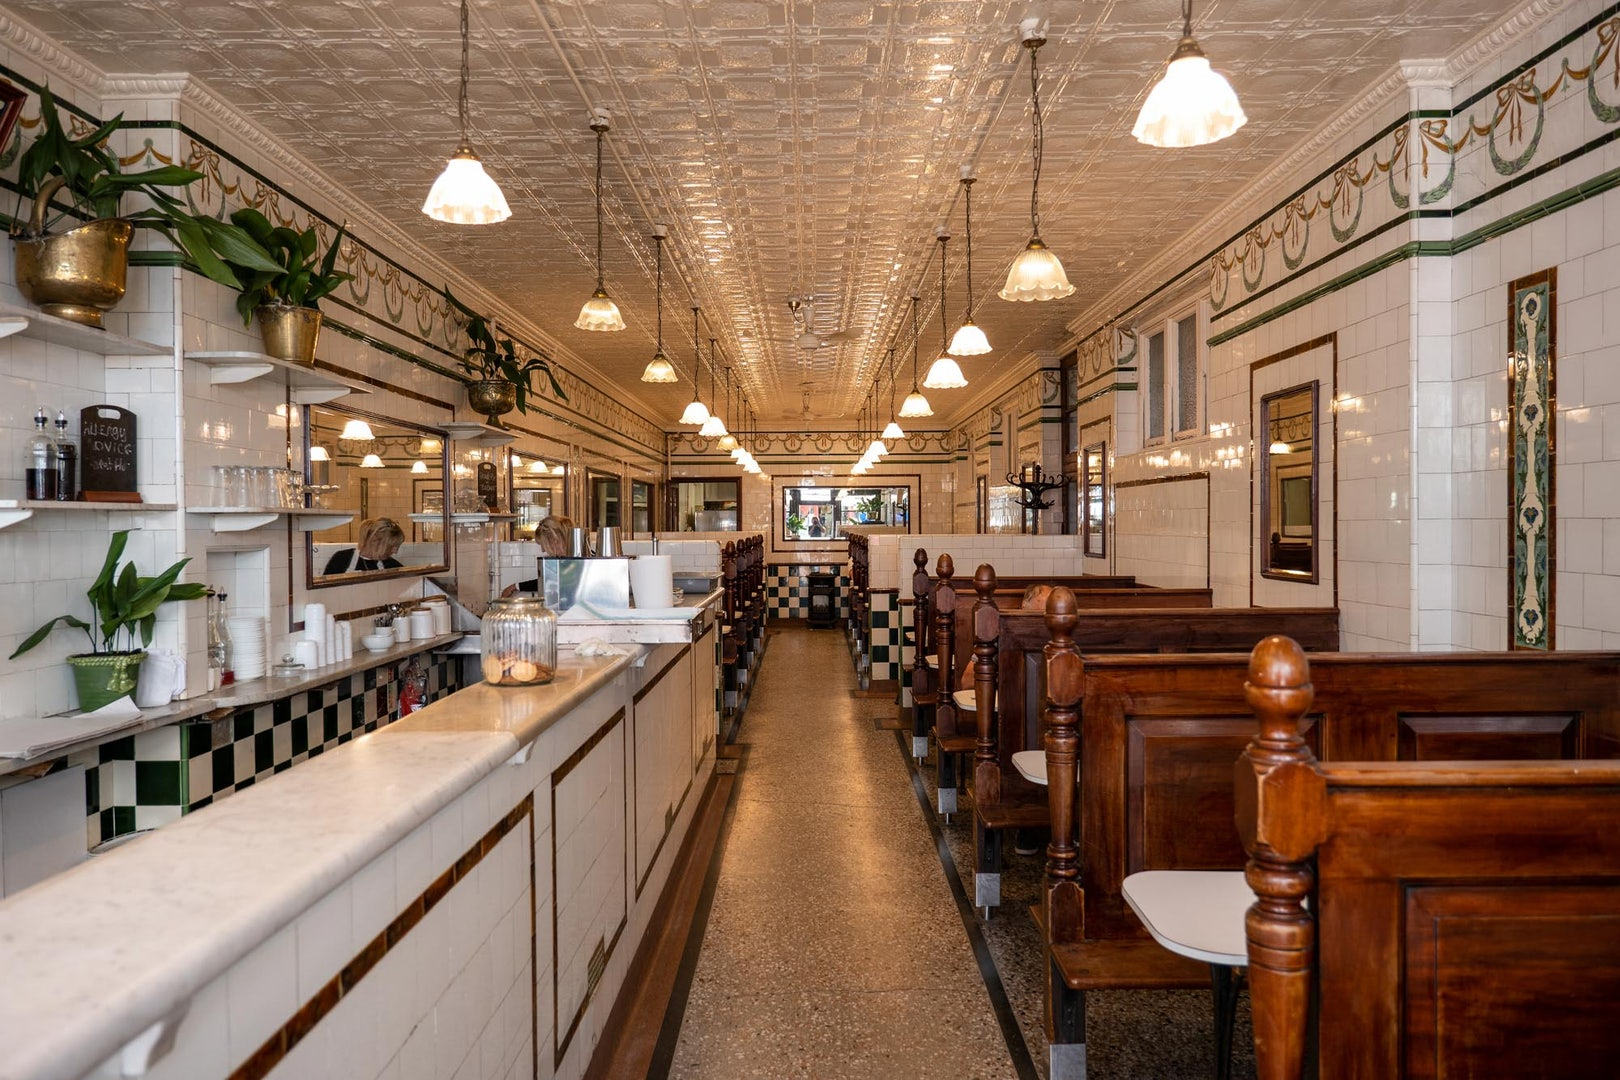 retro interior at The Jellied Eel pie and mash restaurant